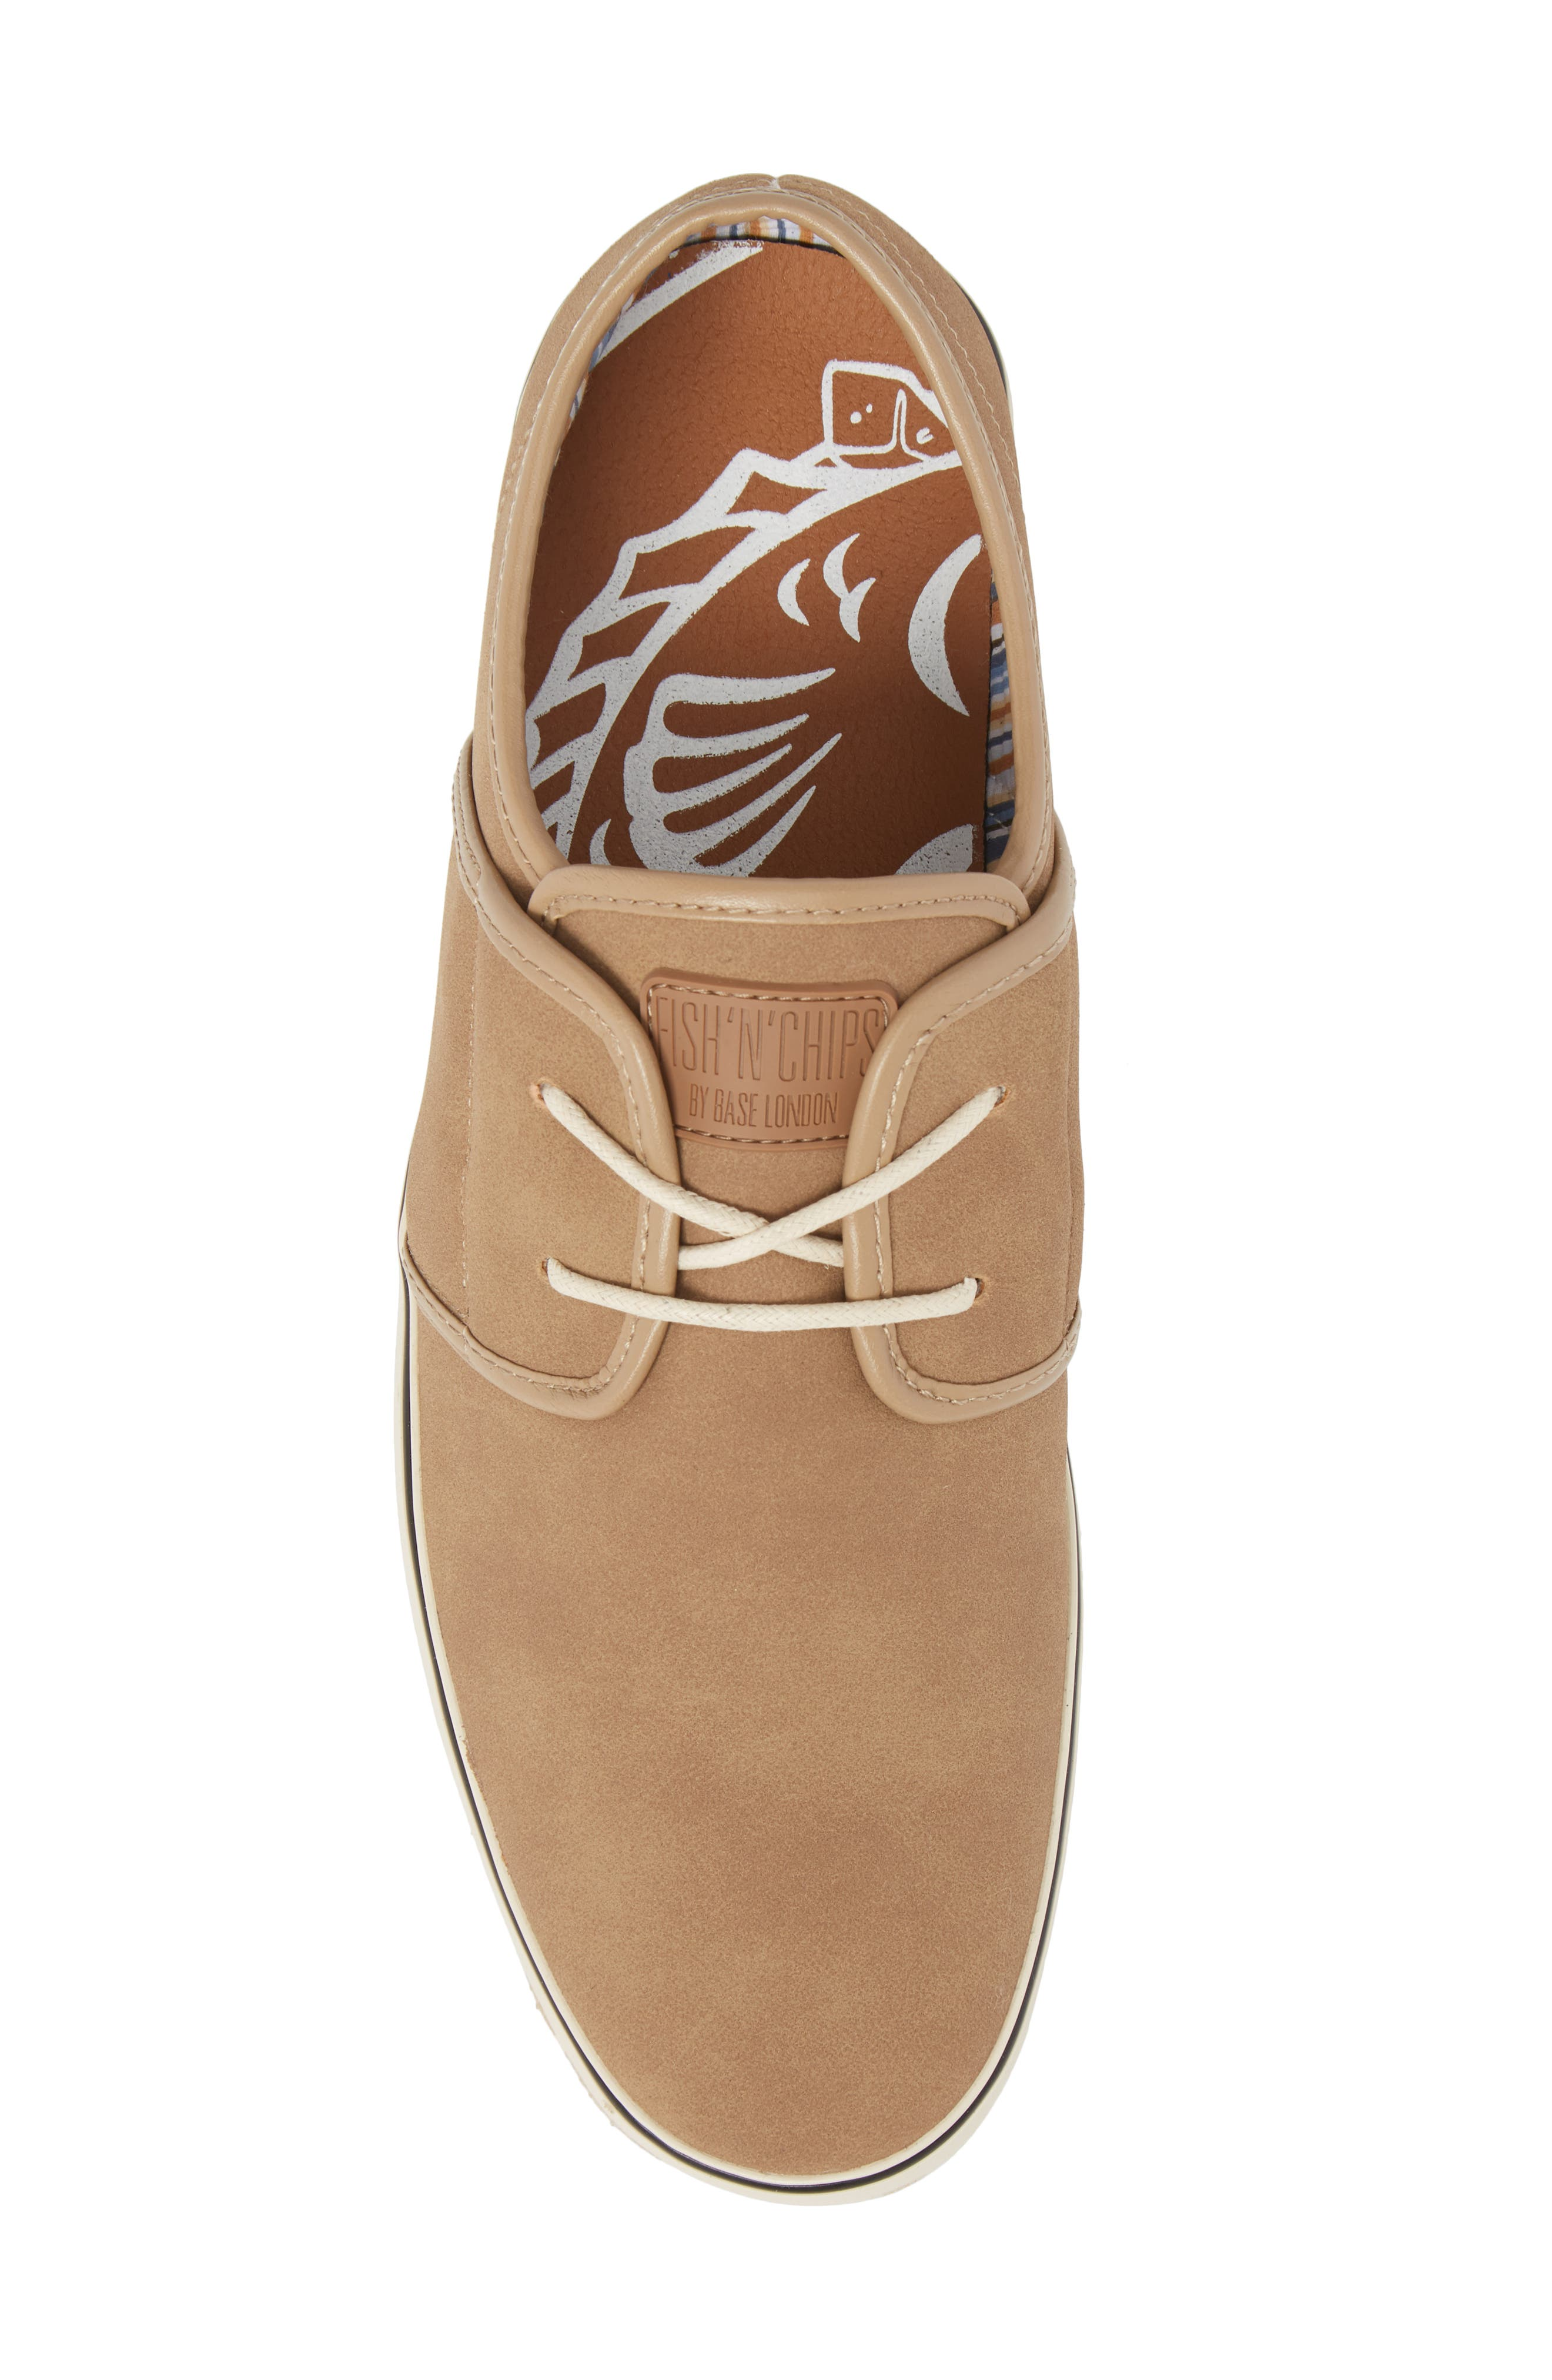 Fish 'N' Chips Surrey Low Top Sneaker,                             Alternate thumbnail 5, color,                             Soft Clay Faux Suede